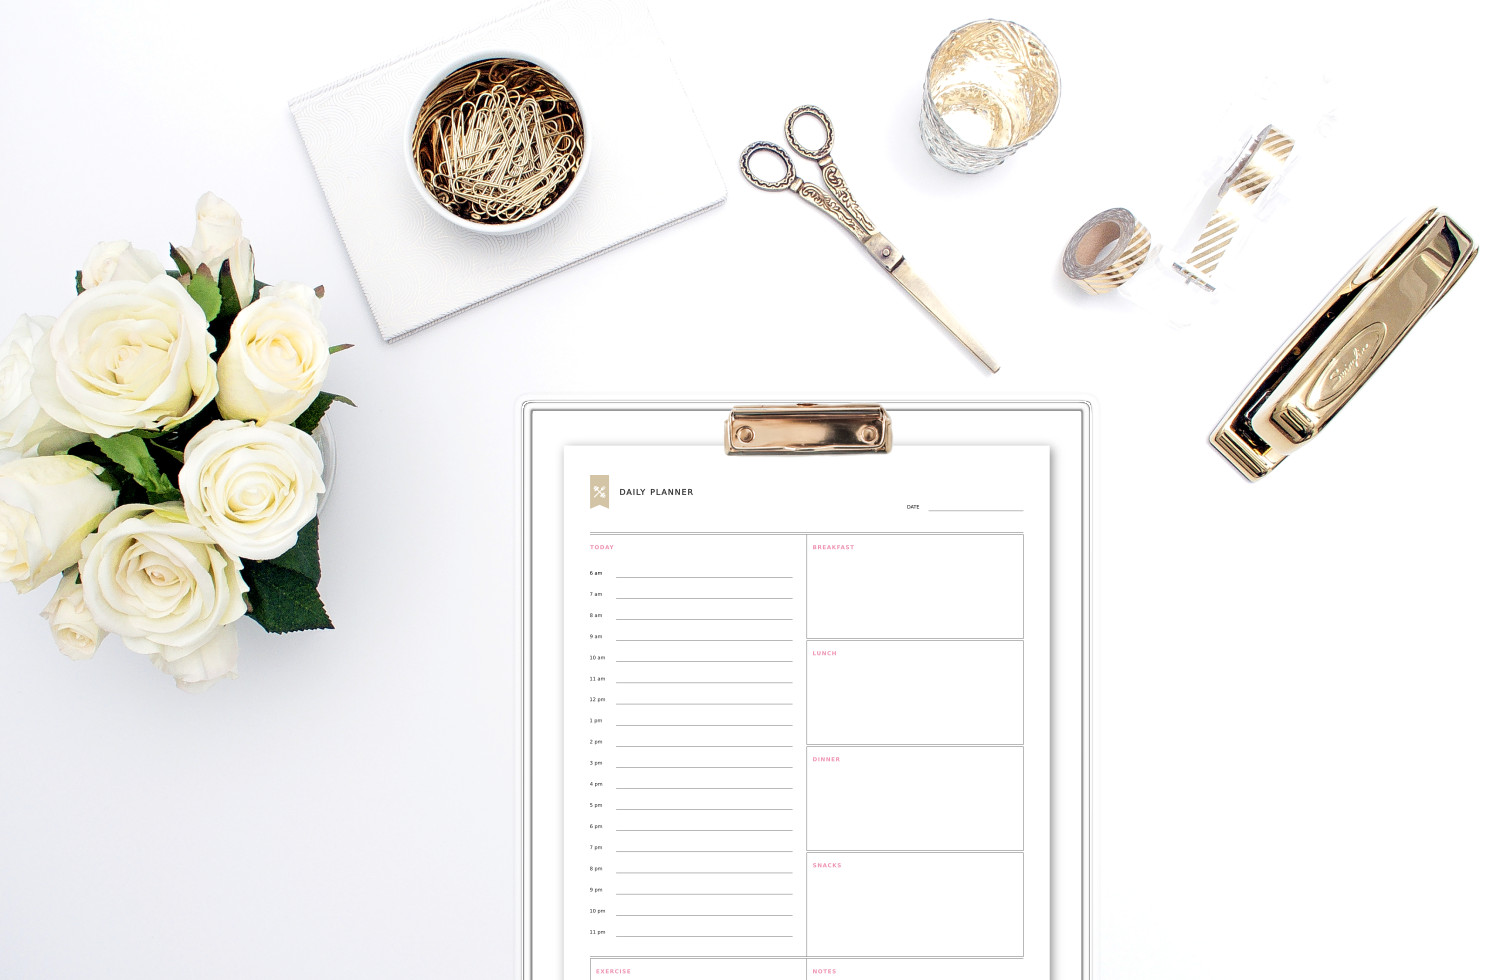 Planning our day the night before helps us be more productive and makes our everyday lives much more manageable and enjoyable. Download and print our daily planner template and be more present in your life! https://www.spotebi.com/fitness-tracker/daily-planner-template/